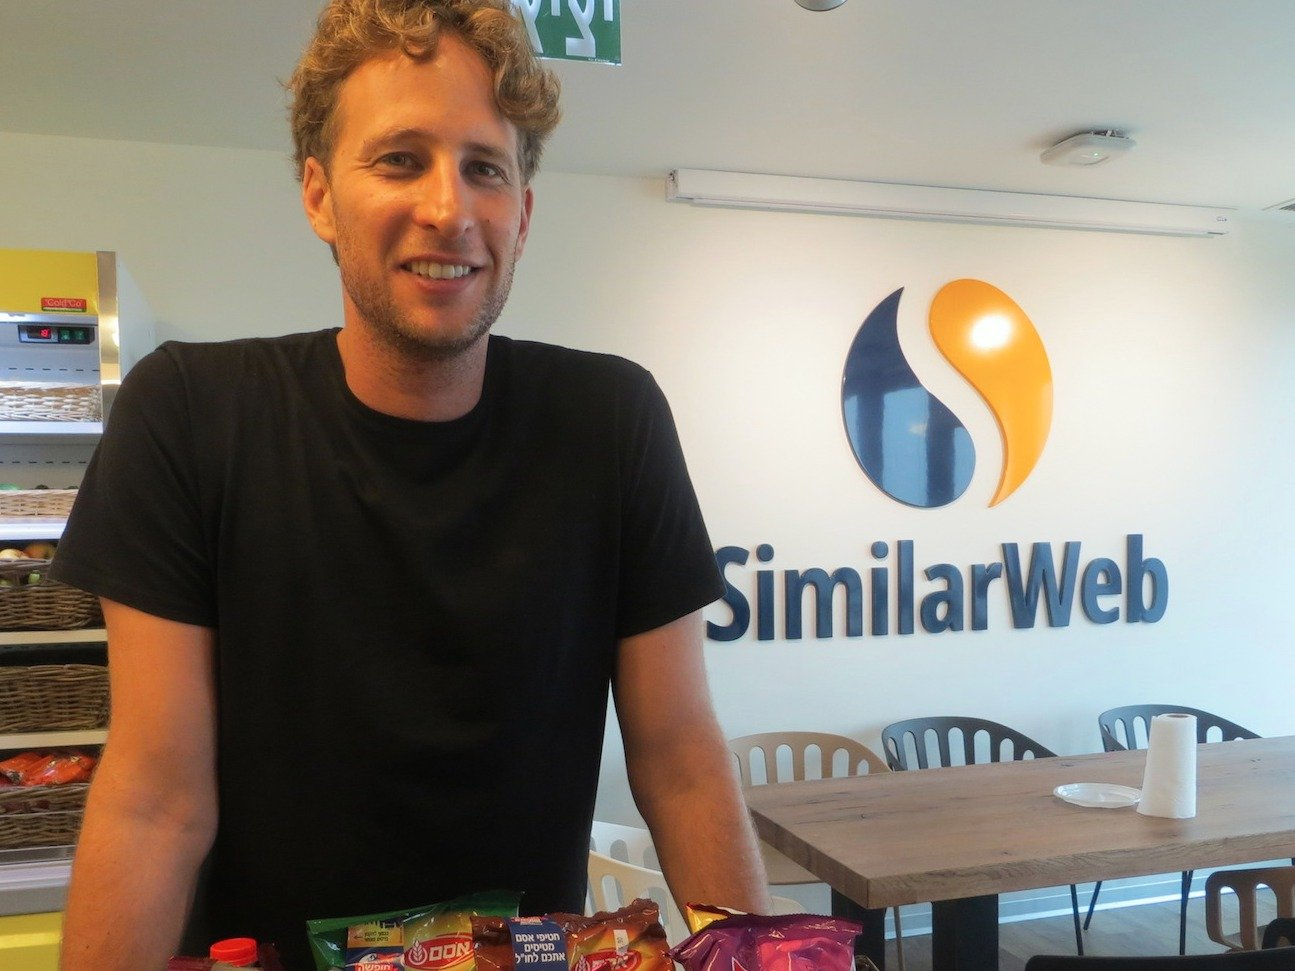 SimilarWeb CEO Or Offer in his Tel Aviv office contemplating about the future of the company